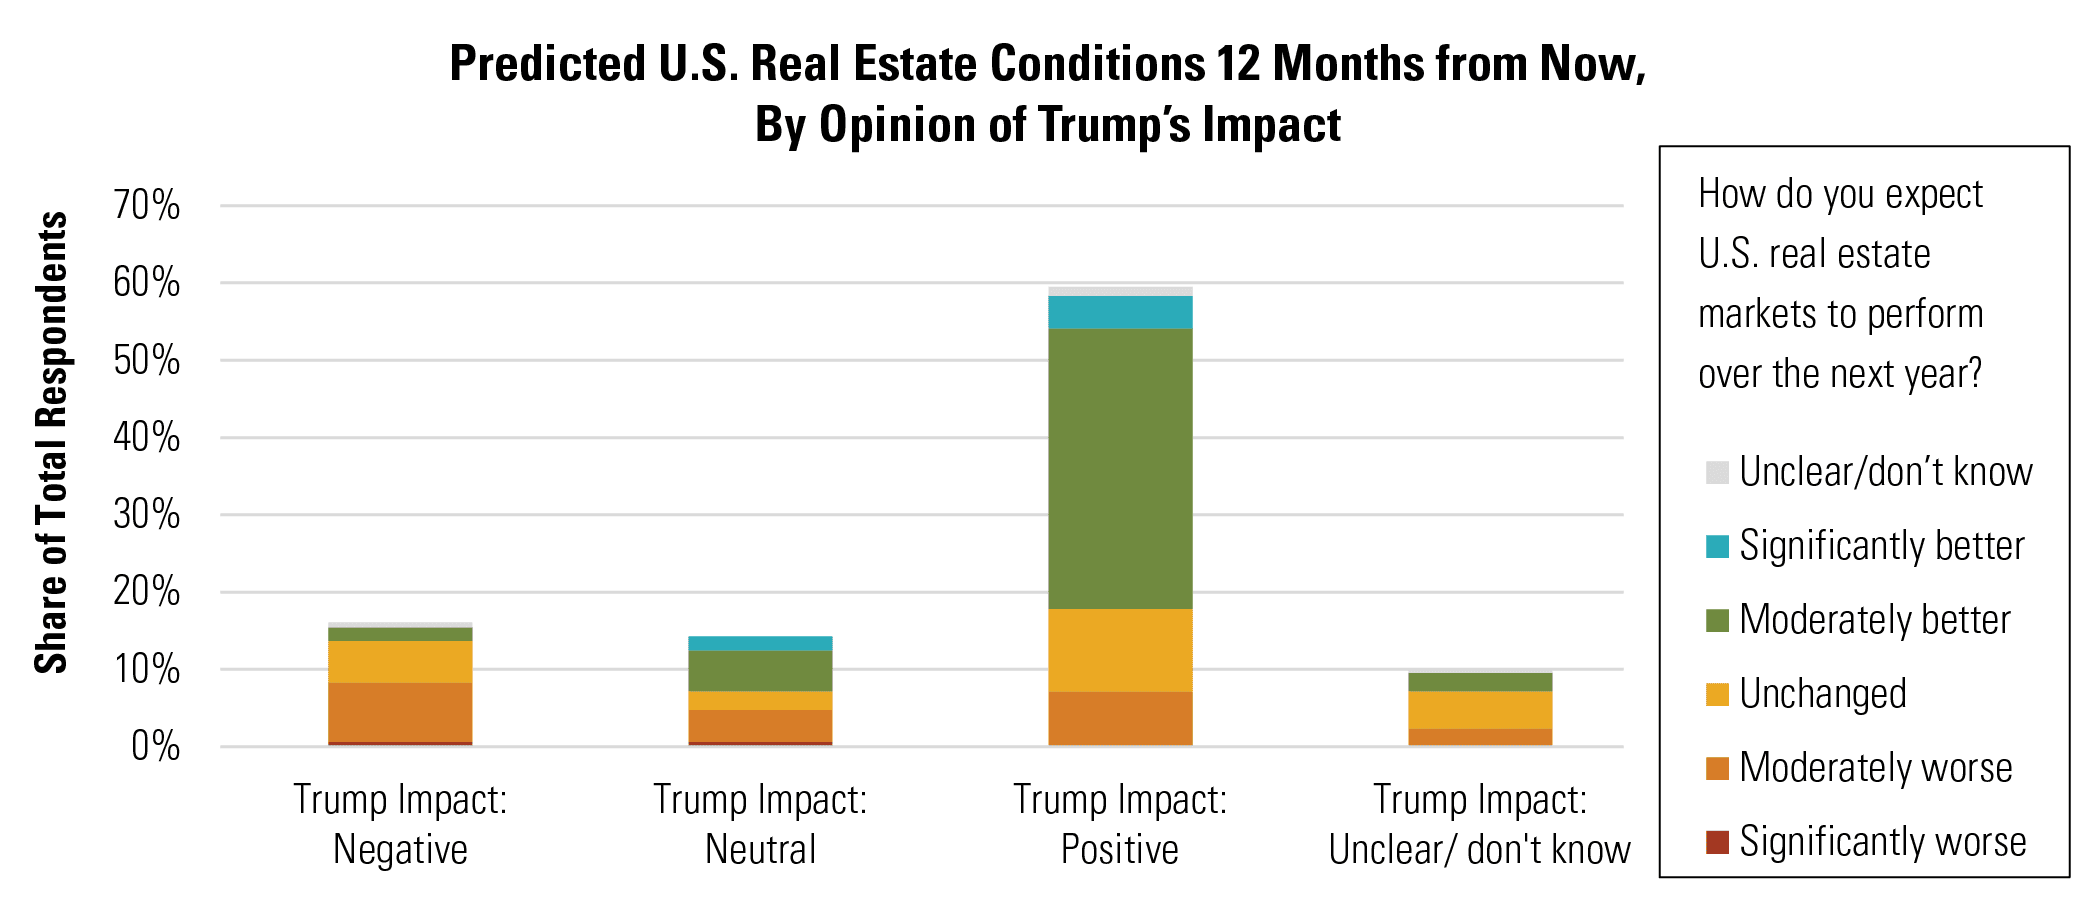 Predicted U.S. Real Estate Conditions 12 Months from Now, By Opinion of Trump's Impact